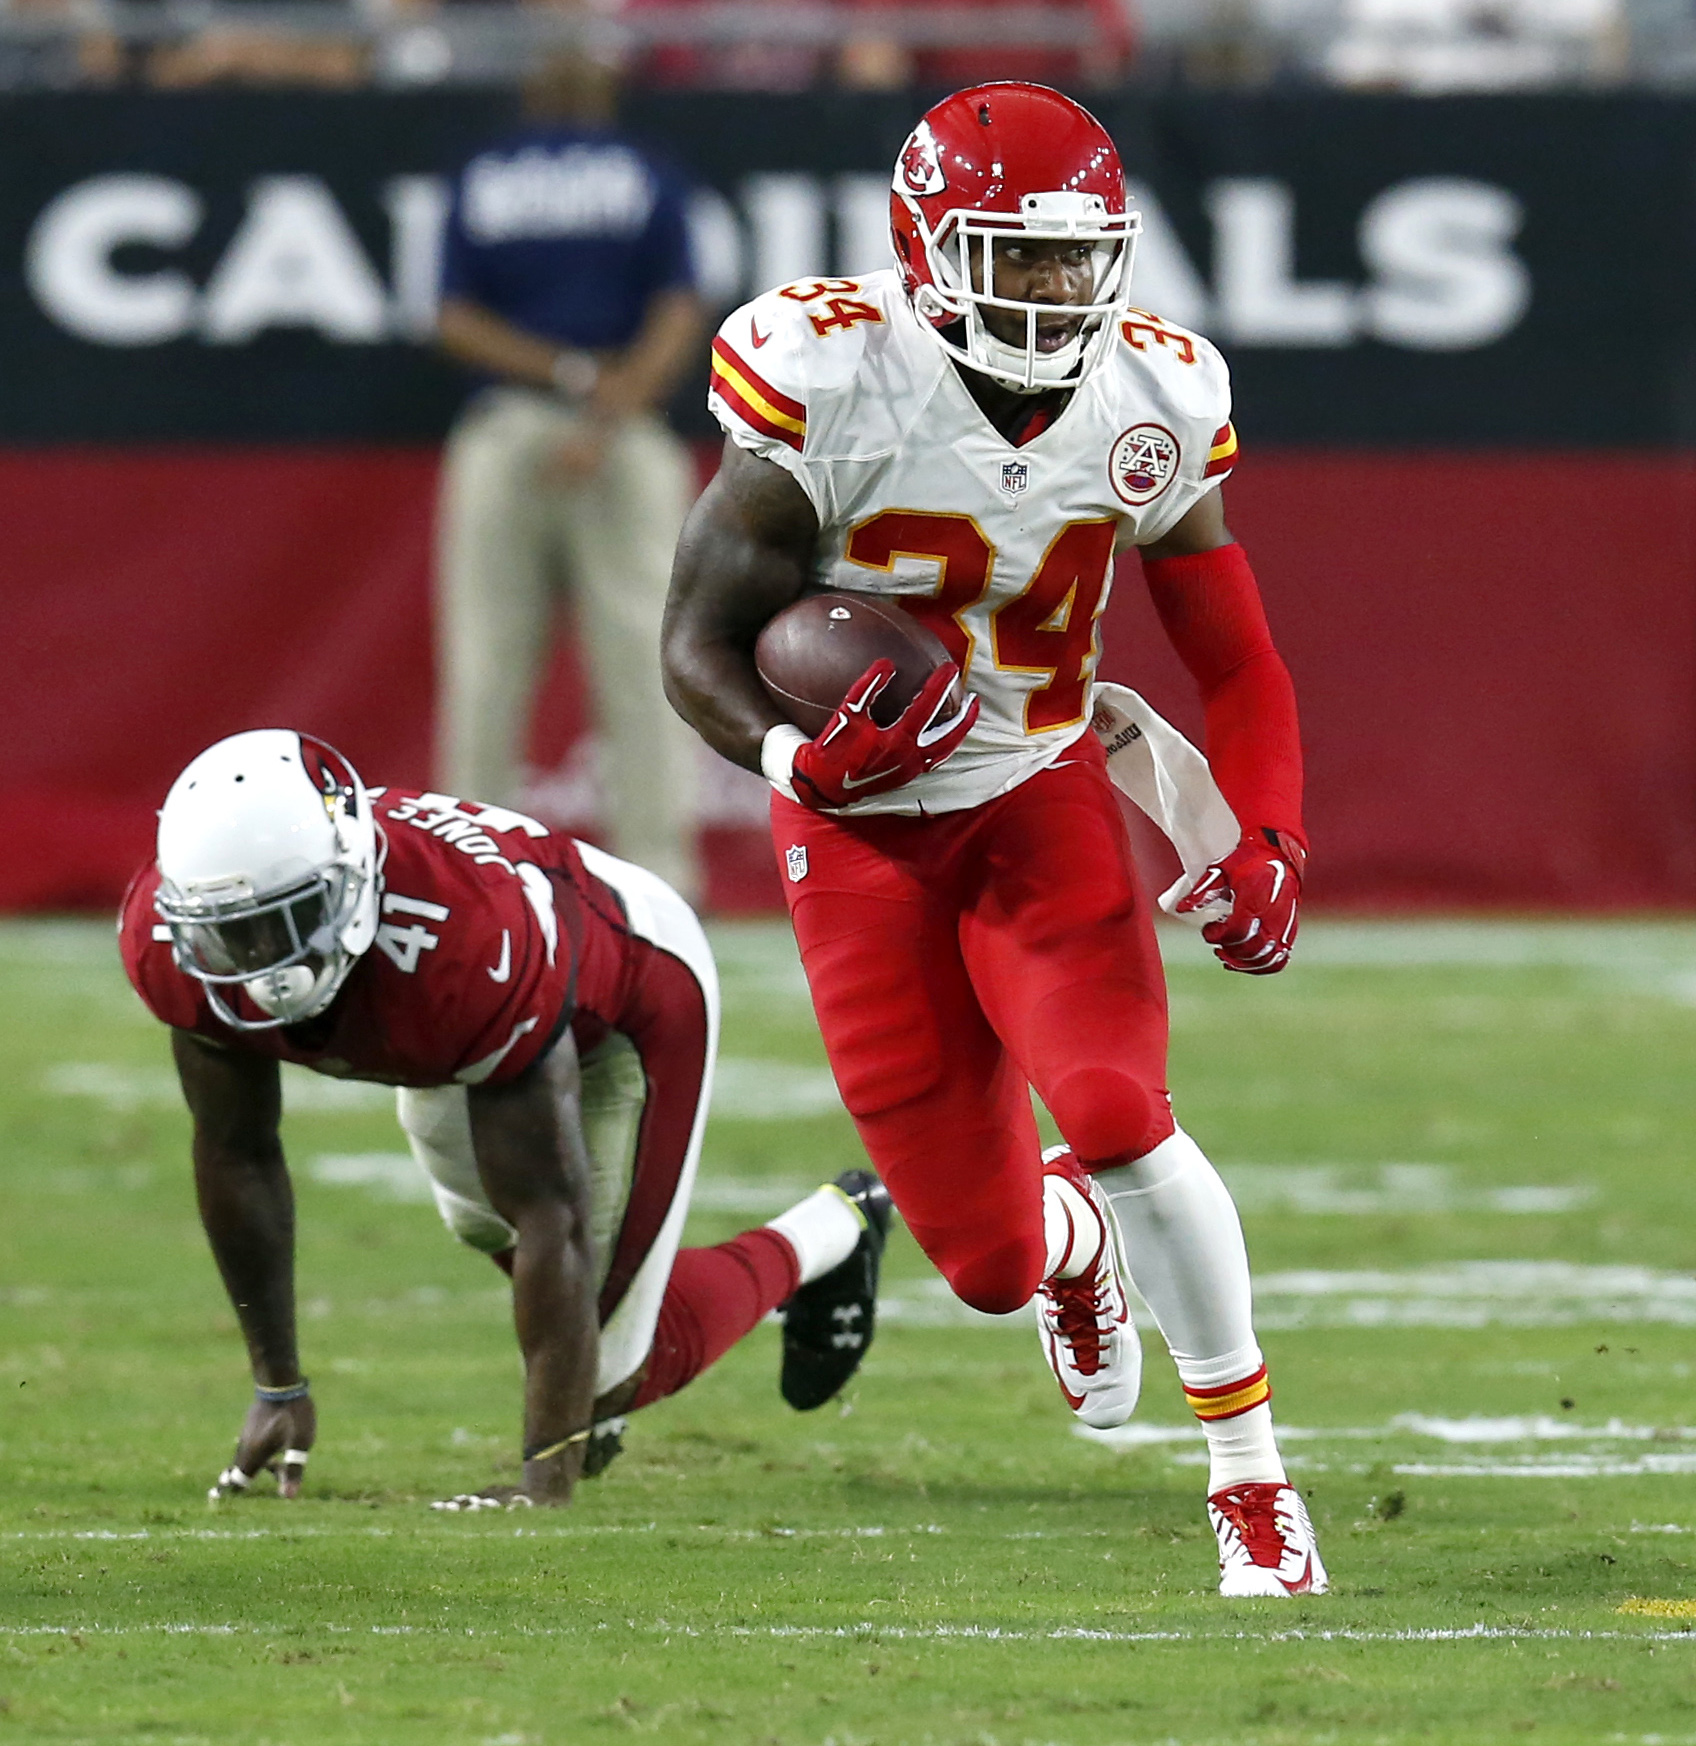 FILE - In this Aug. 15, 2015, file photo, Kansas City Chiefs running back Knile Davis (34) runs against the Arizona Cardinals during the first half of an NFL preseason football game in Glendale, Ariz. The success of Jamaal Charles in the Chiefs offense th